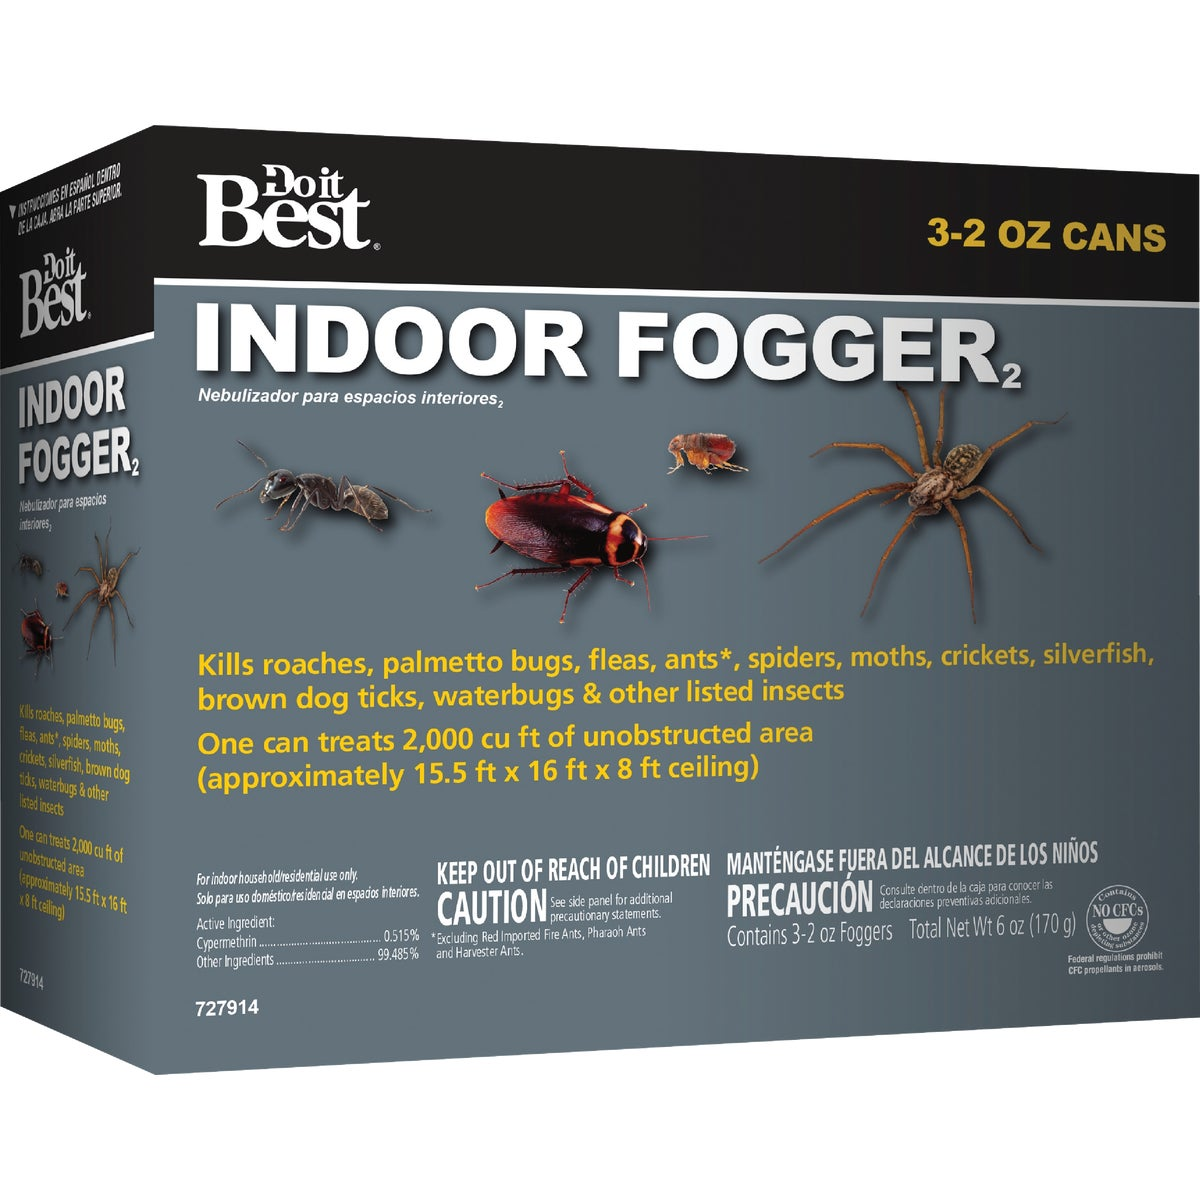 3PK INDOOR FOGGER - 727914 by Maid Brands Inc